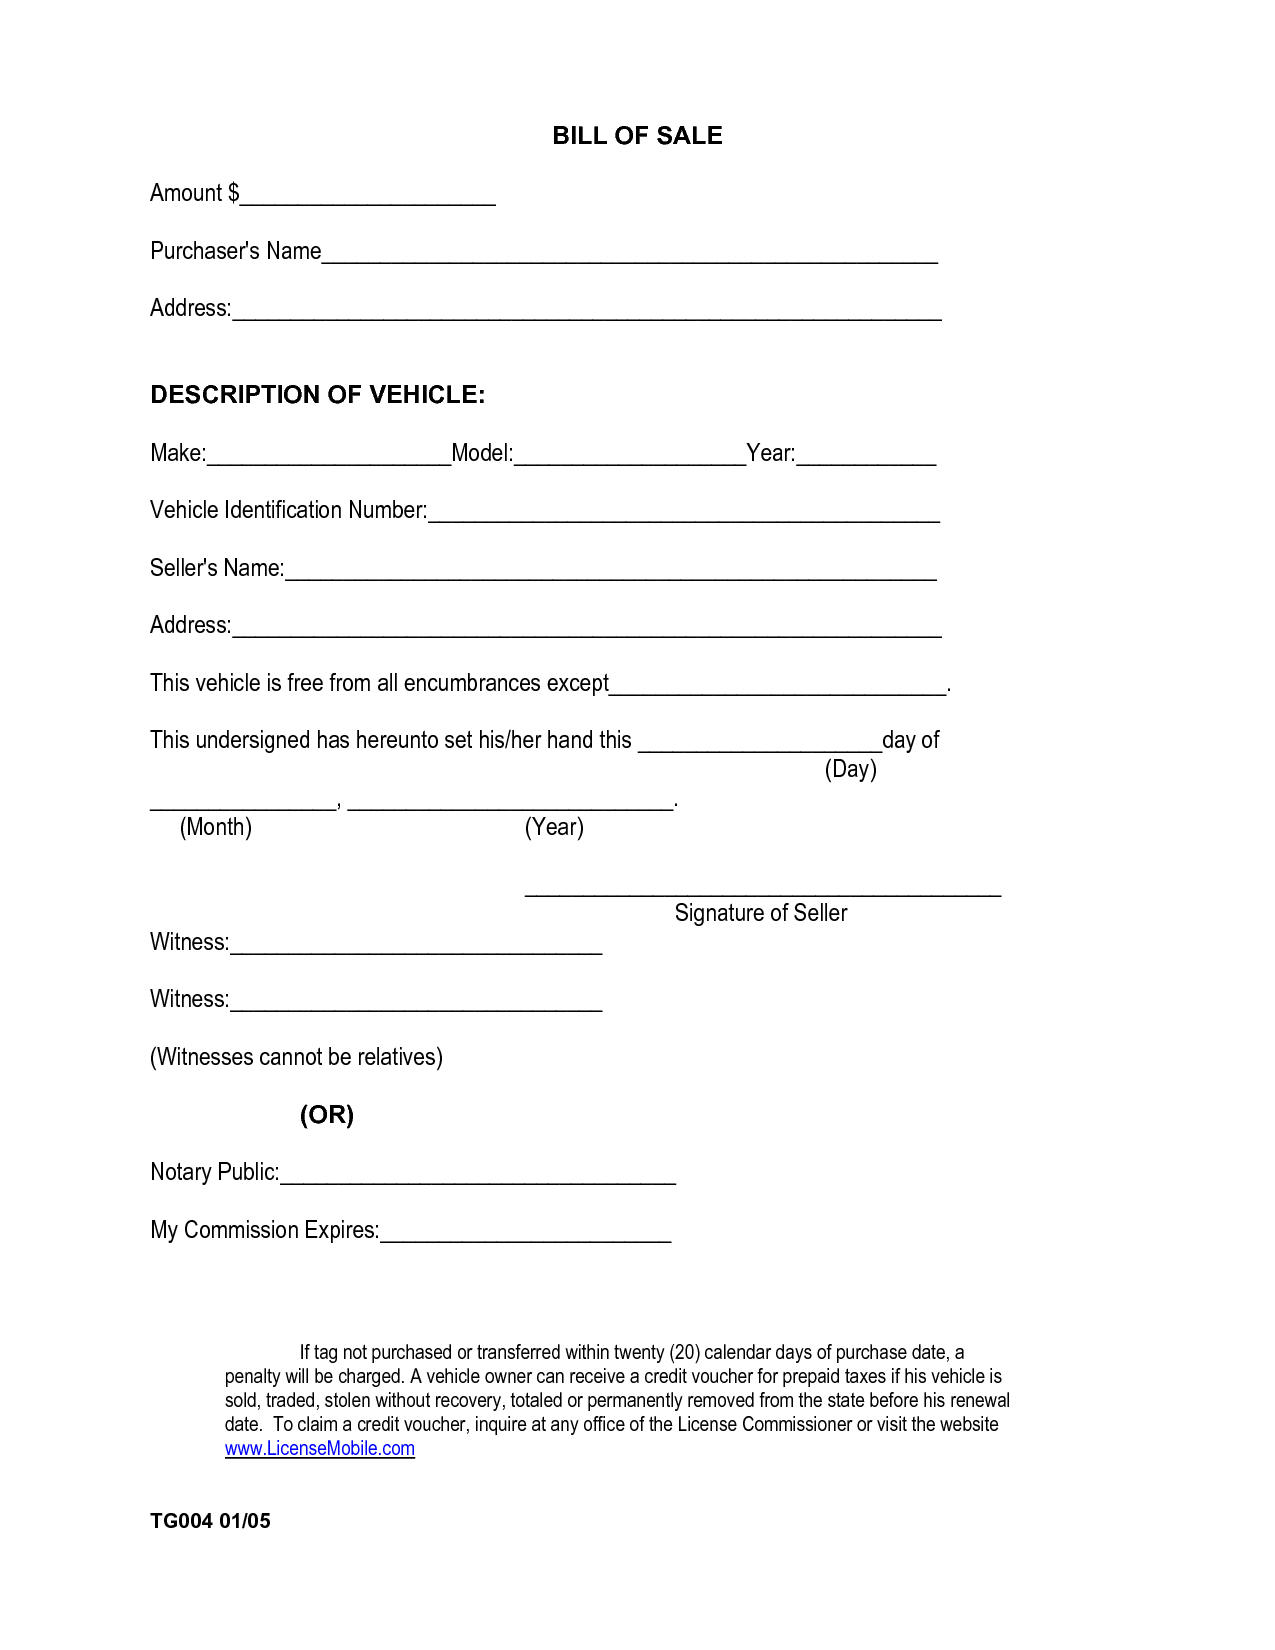 Sample Automotive Bill Of Sale and Printable Sample Car Bill Of Sale form Laywers Template forms